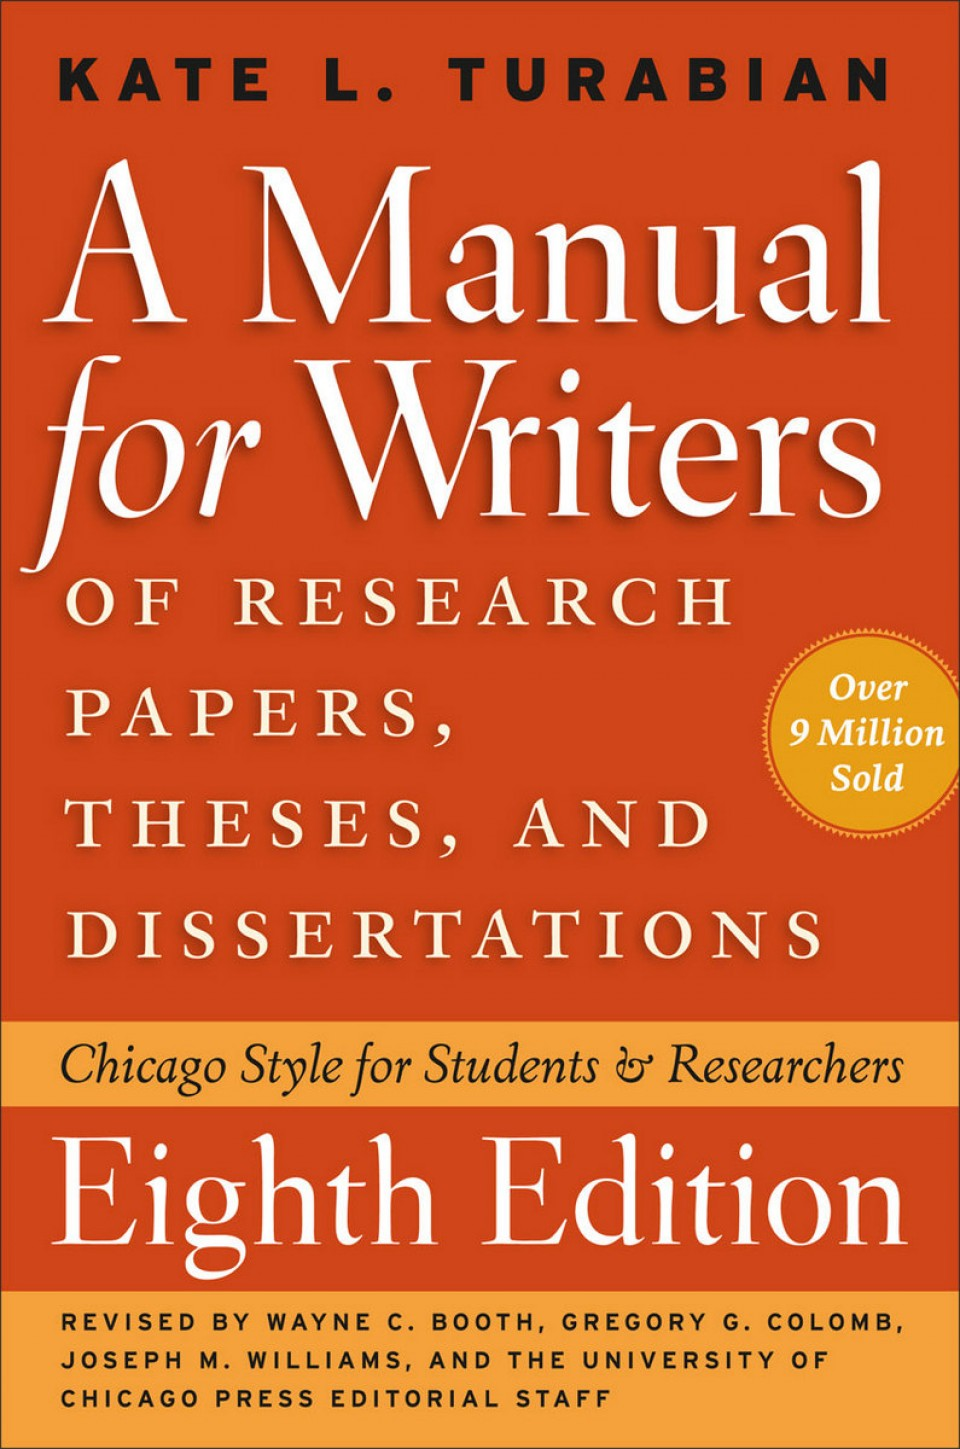 002 Frontcover Manual For Writers Of Researchs Theses And Dissertations Sensational A Research Papers 8th Edition Pdf Eighth 960